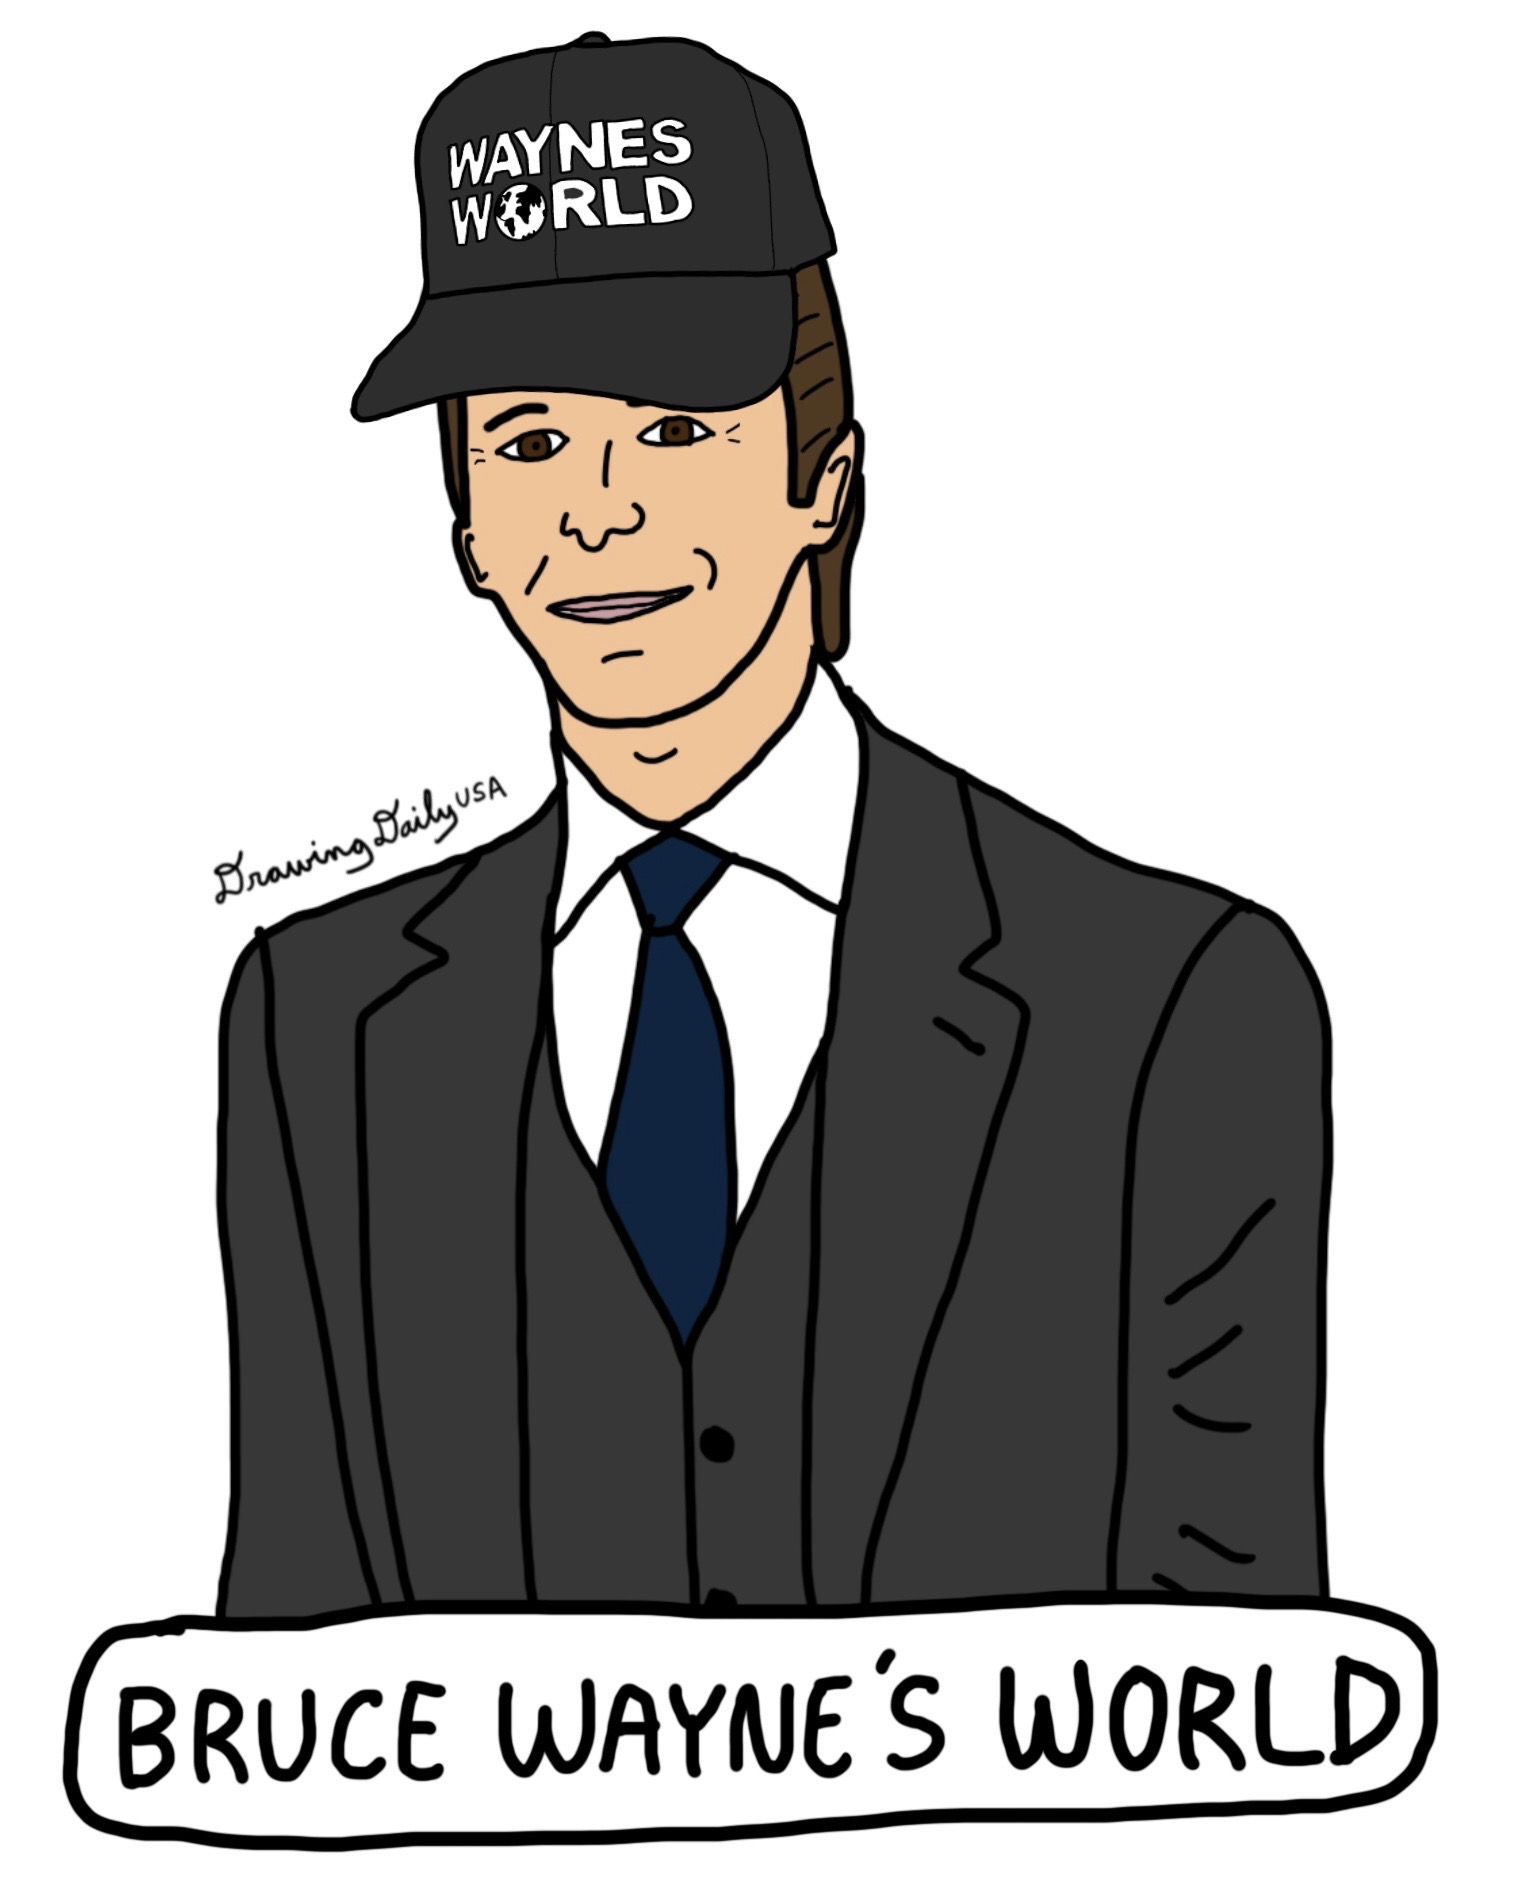 Bruce Wayne's World